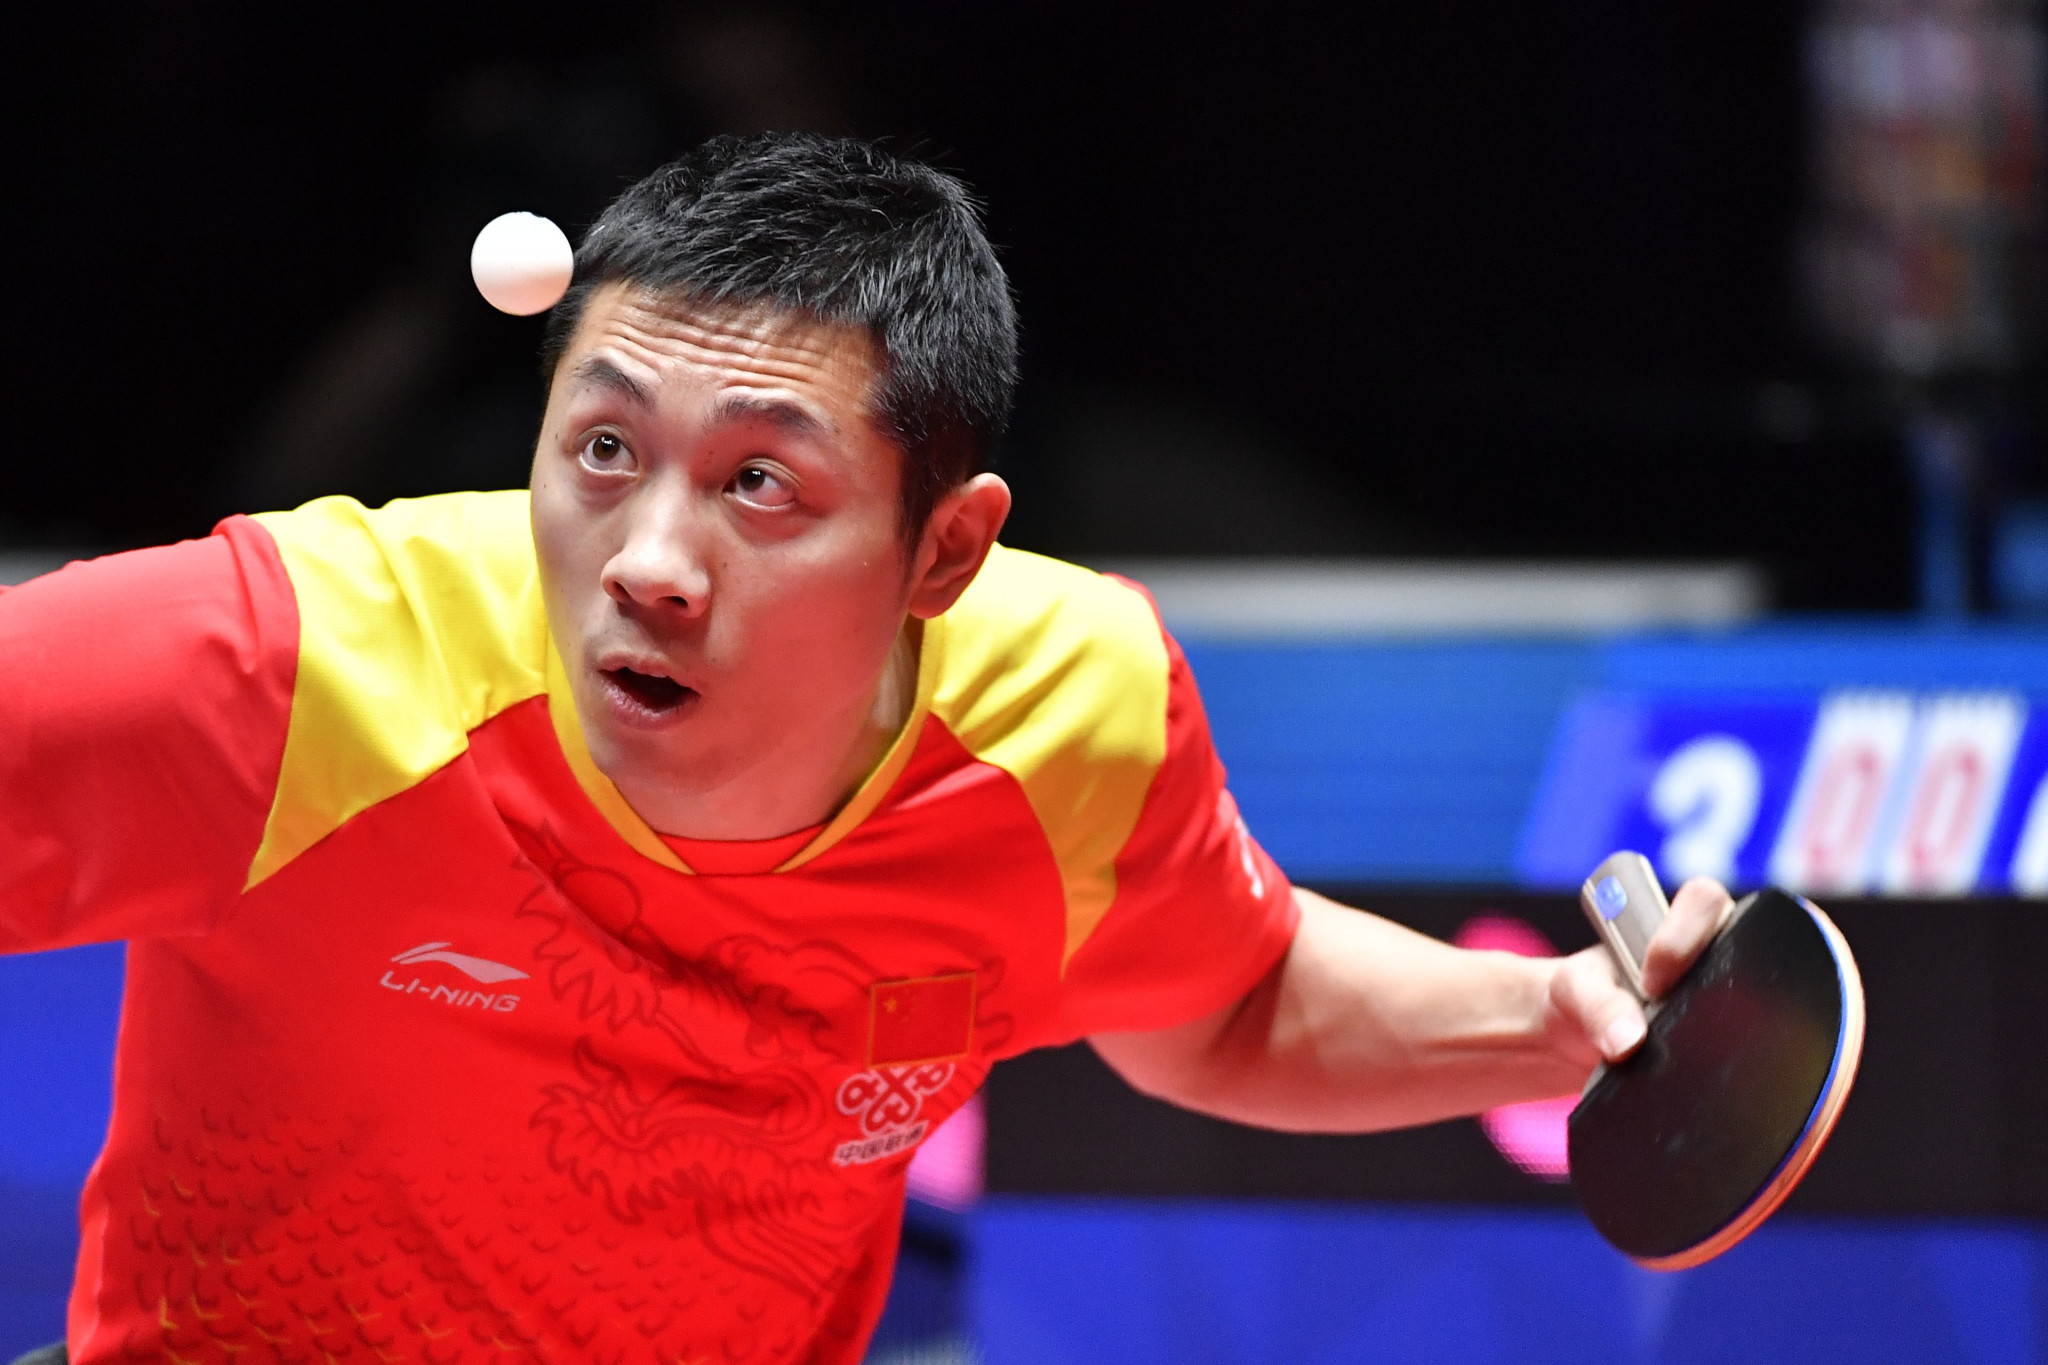 Tickets go on sale for 2019 ITTF World Championships